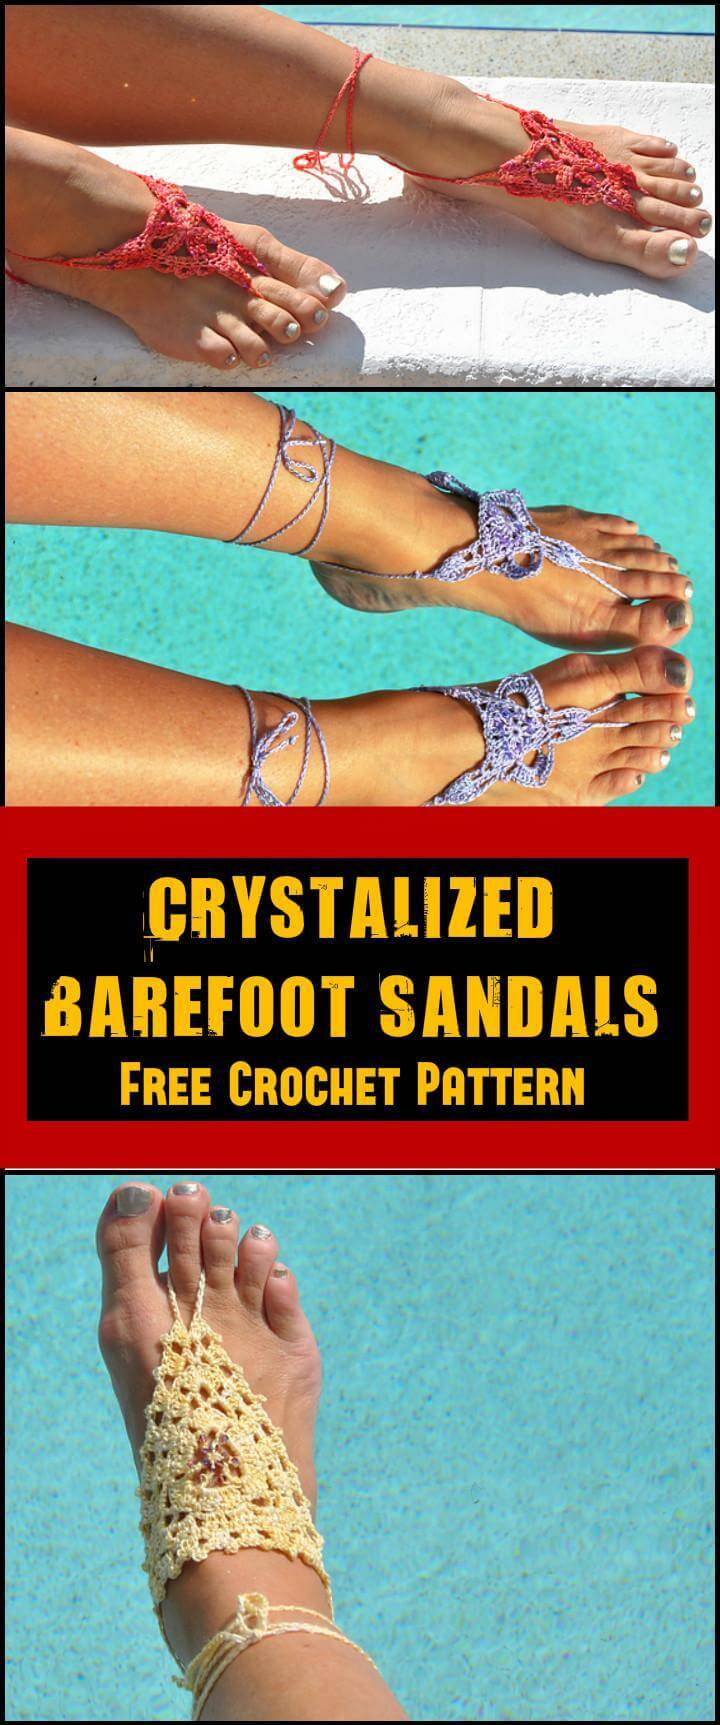 Crystalized Barefoot Sandals Free Crochet Pattern